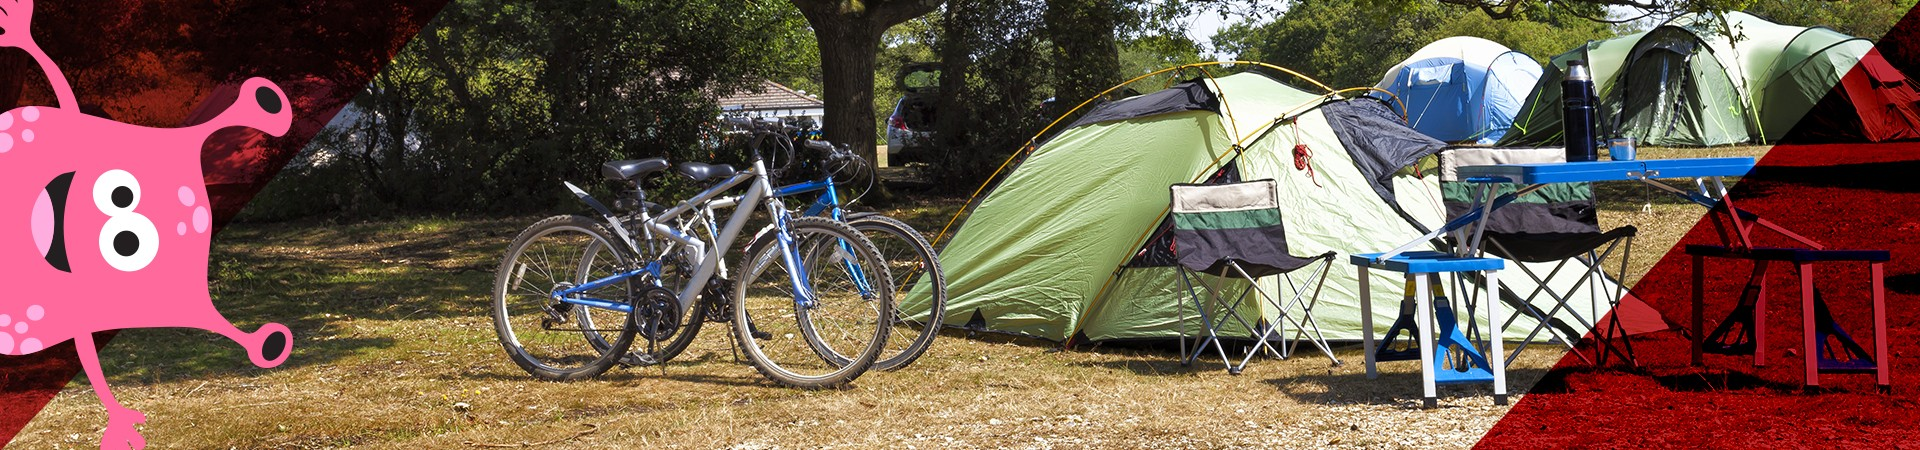 monster peering out corner - campsite with bikes and chairs